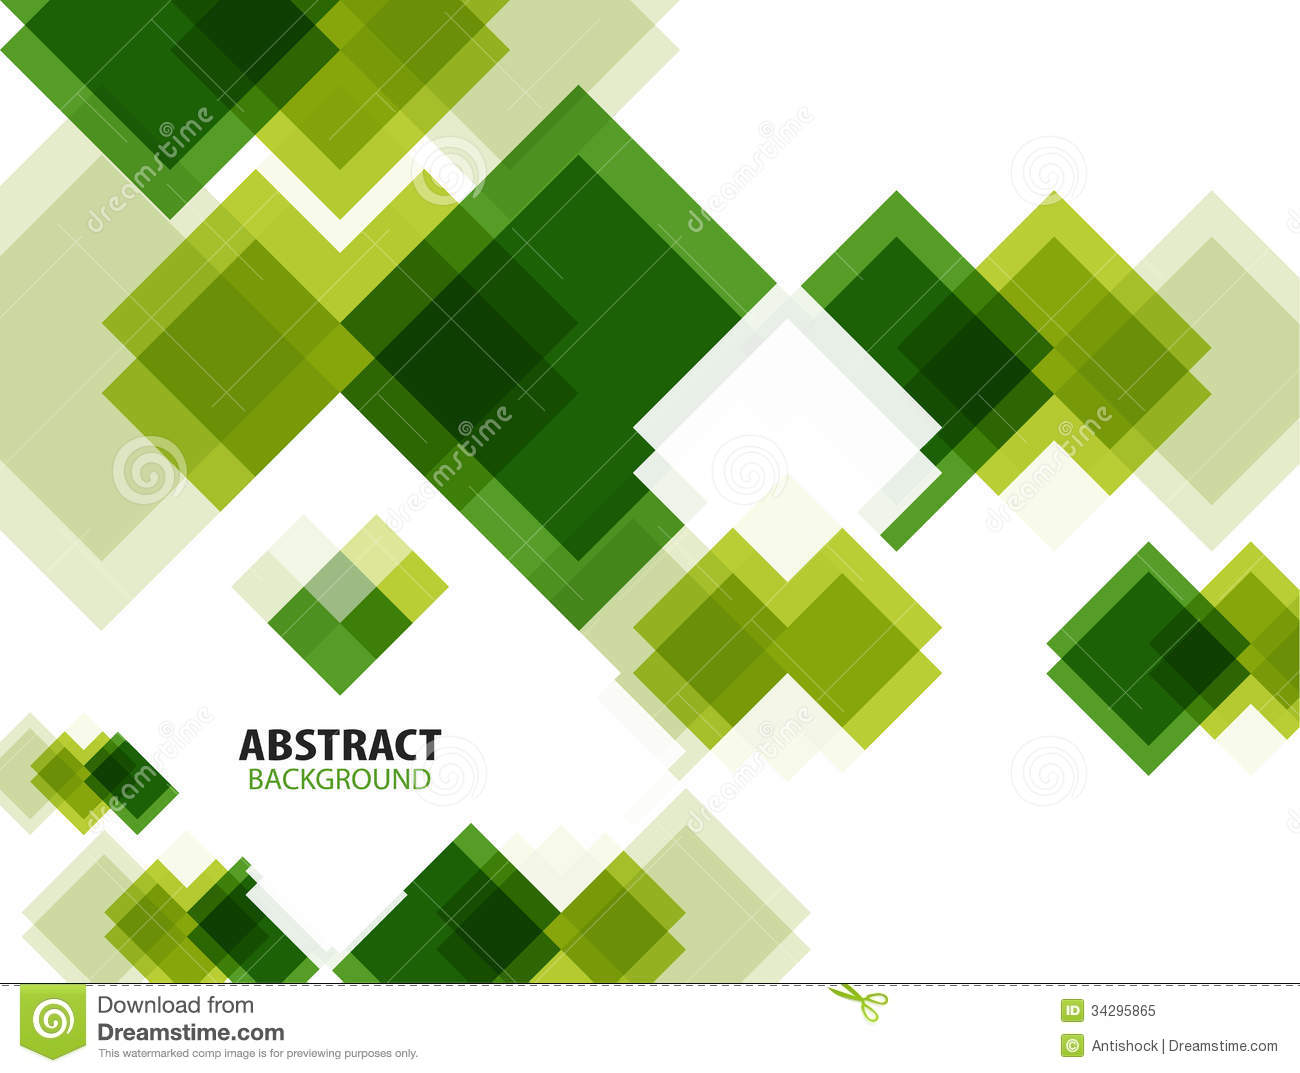 Royalty Free Stock Photo Green Modern Geometrical Abstract Background File Eps Format Image34295865 on file symbol thumbs up color